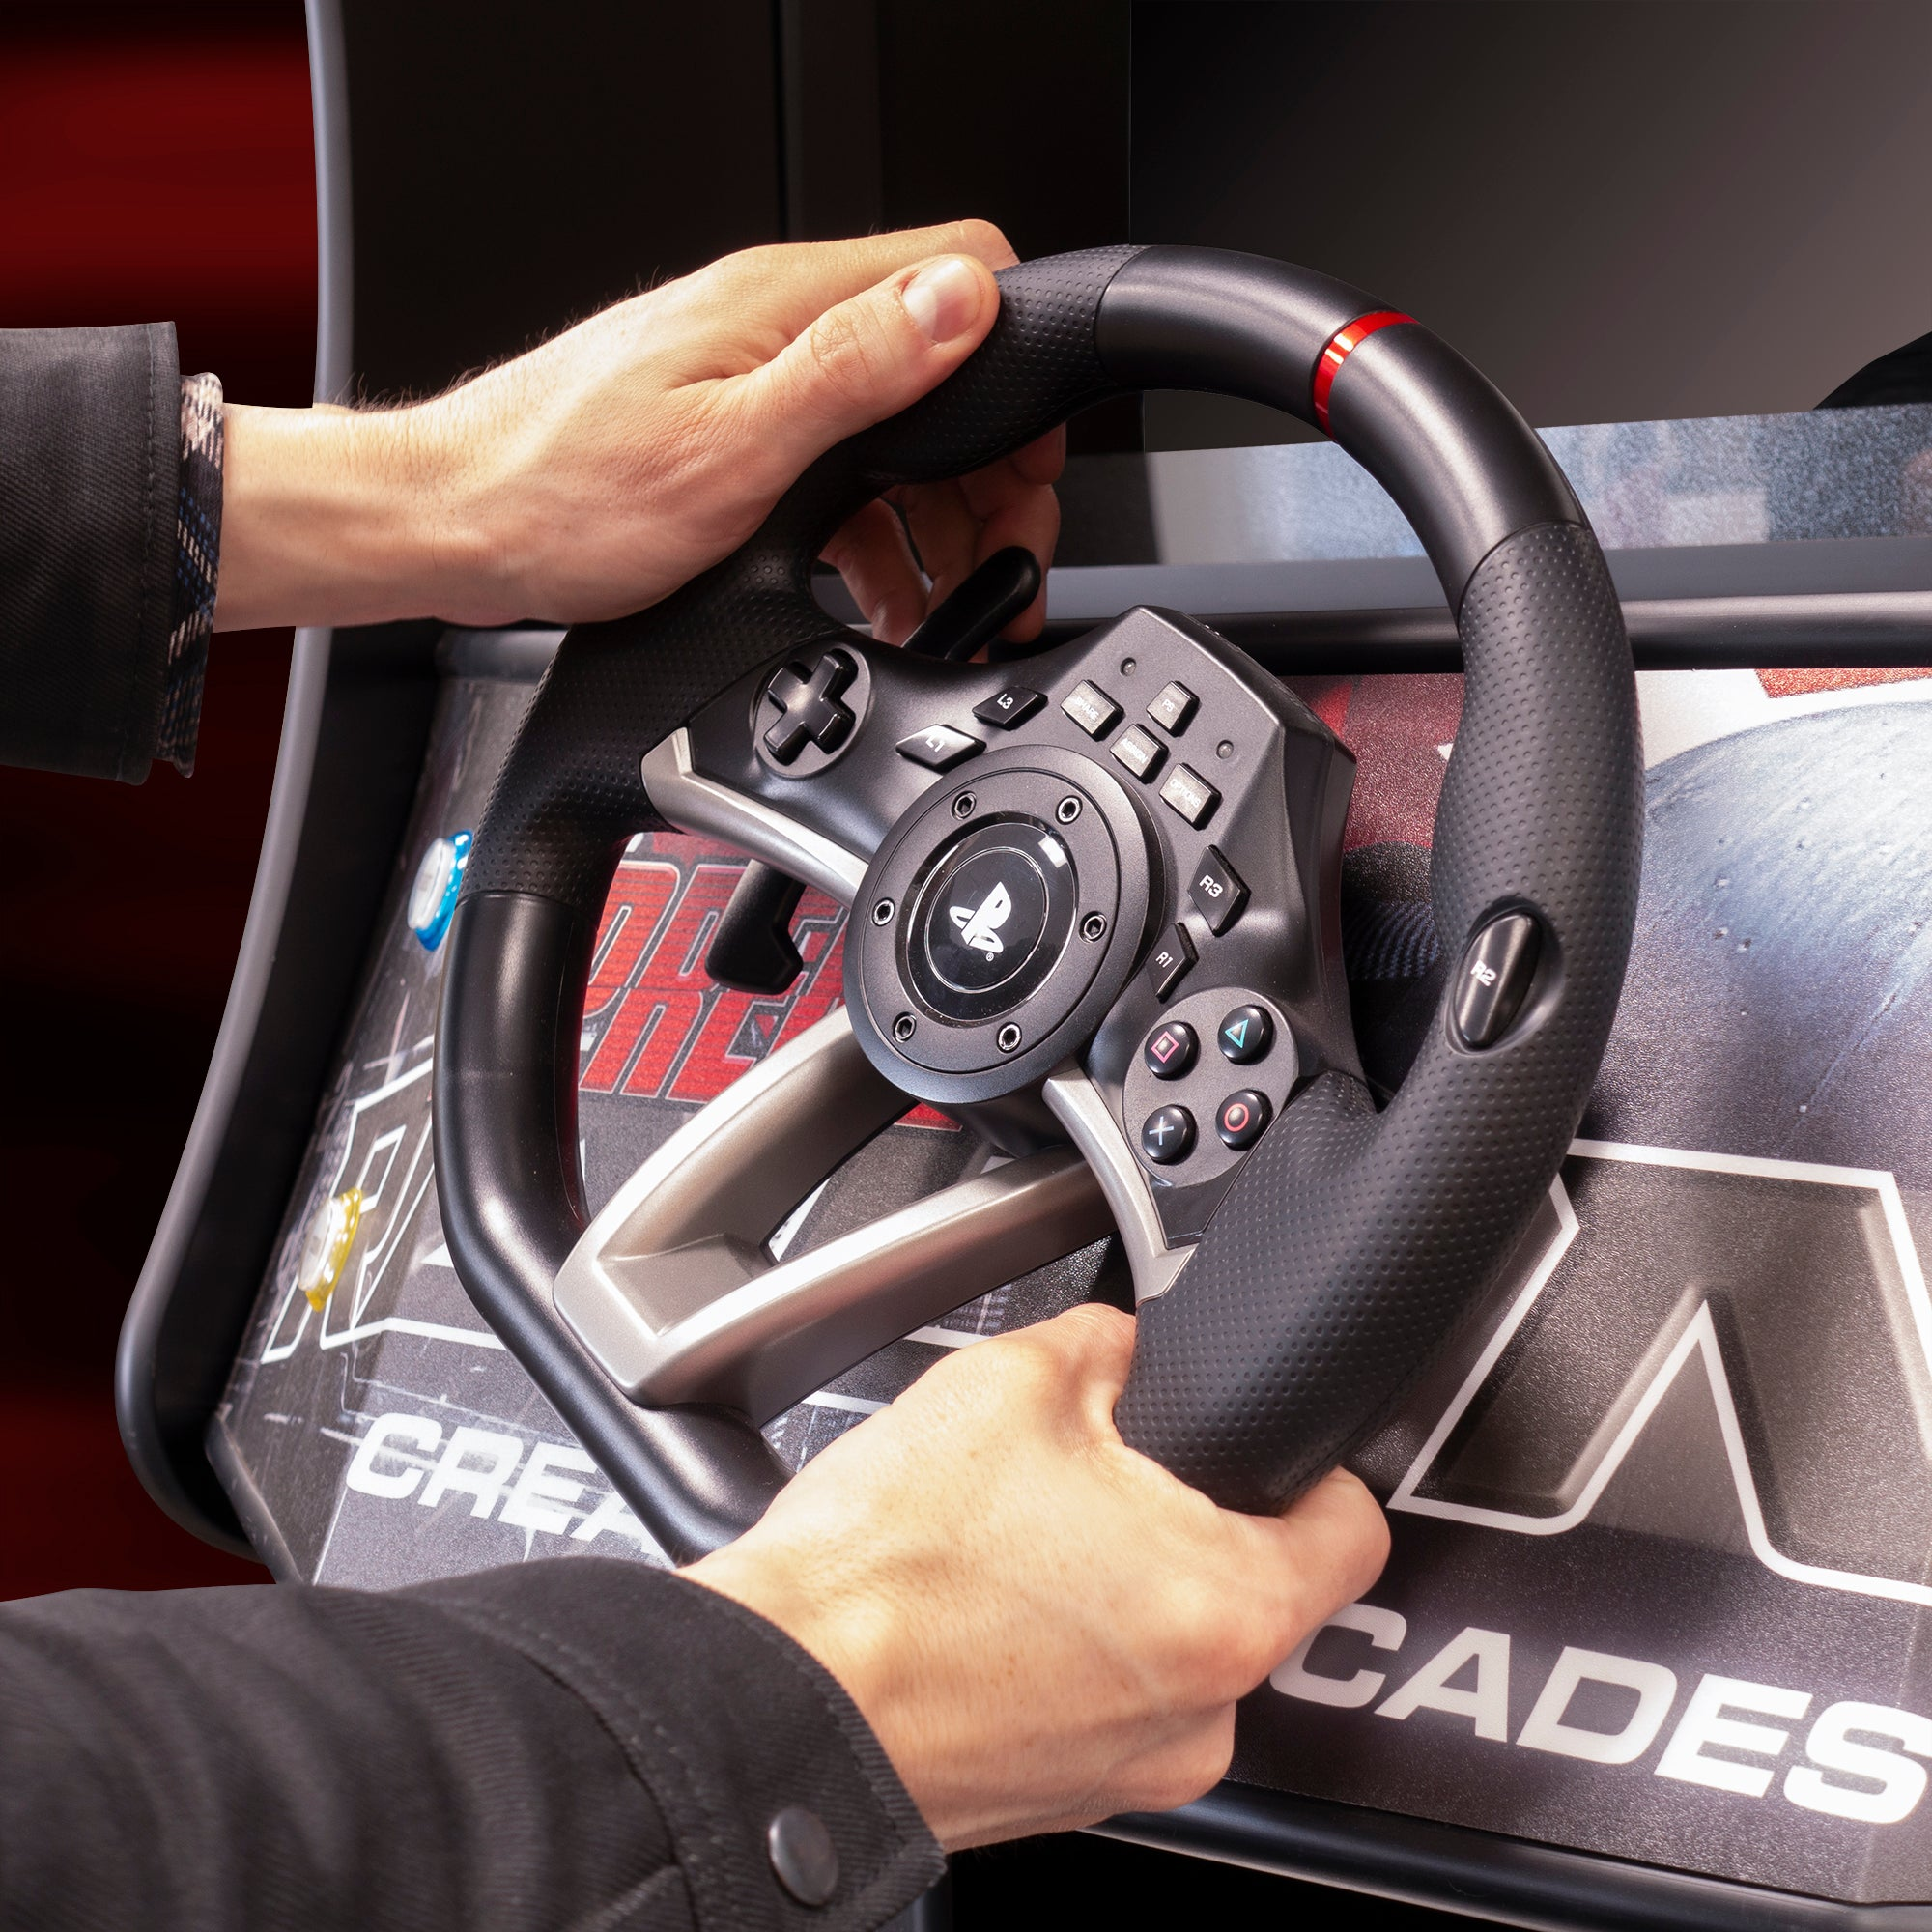 370229 Racing Arcade Machine Steering Wheel